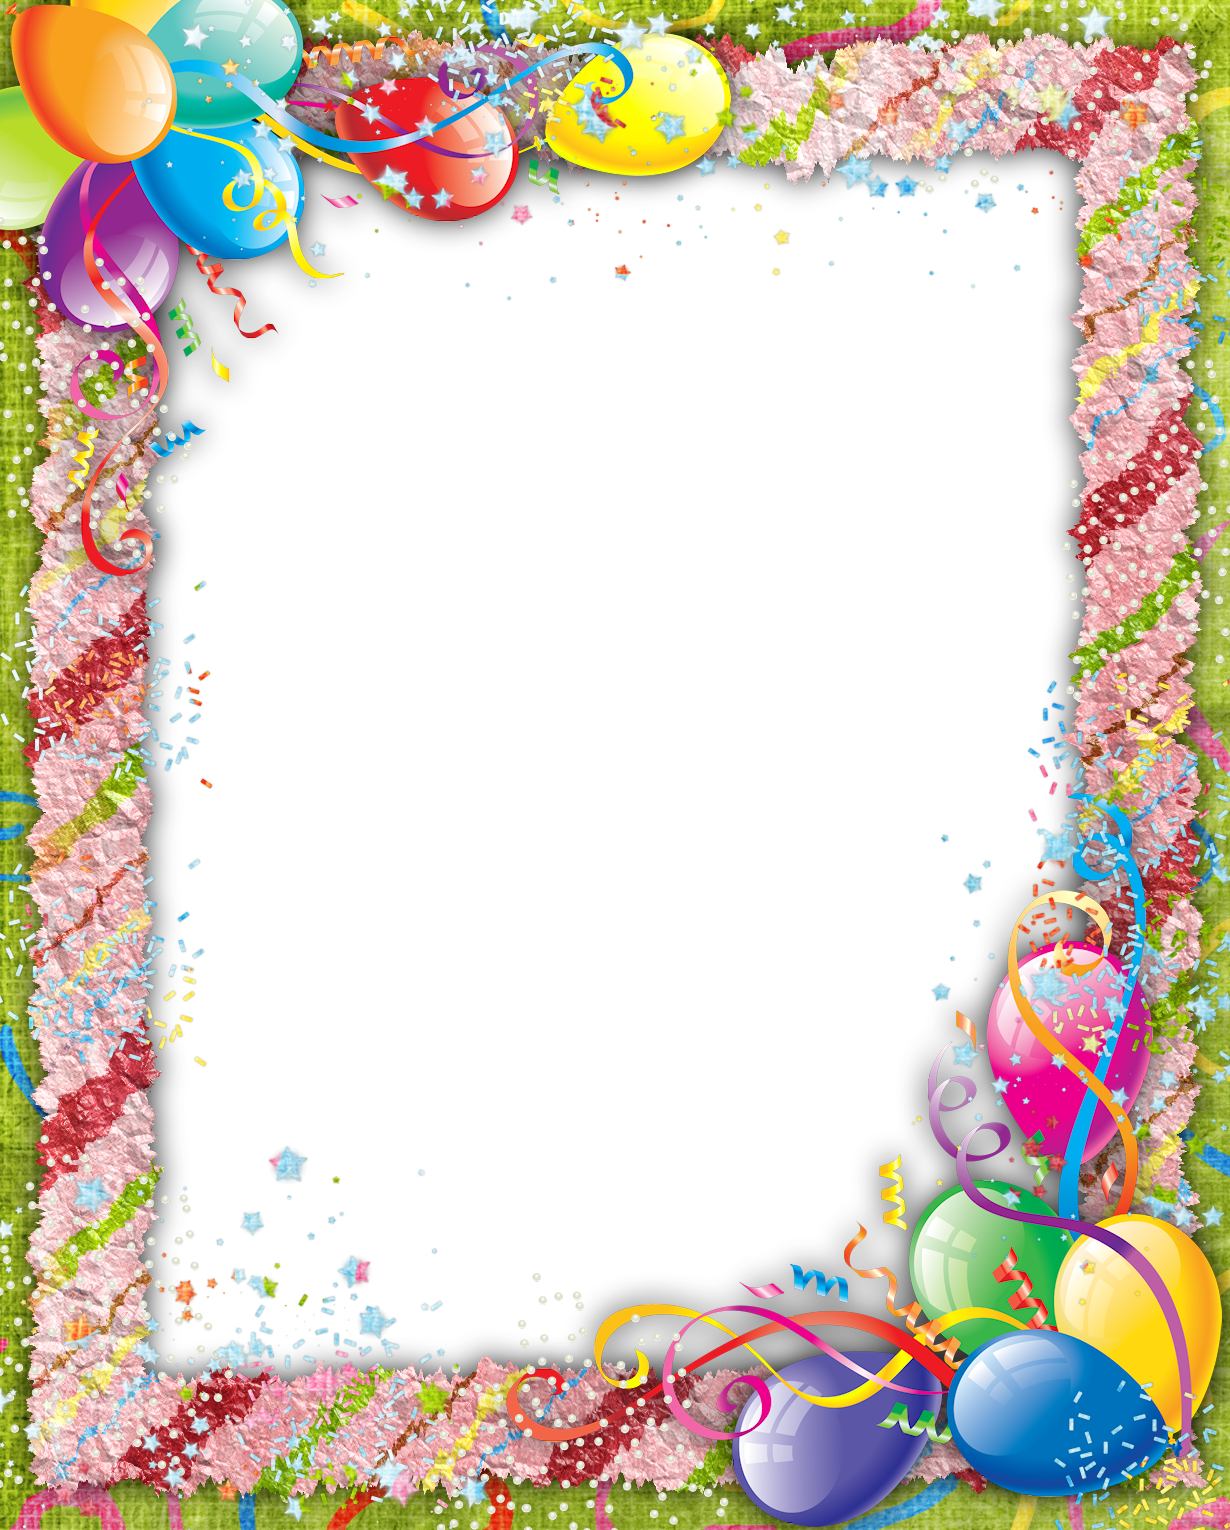 Transparent Birthday Png Frame Gallery Yopriceville High Quality Images And Transparent Png Free Happy Birthday Frame Birthday Photo Frame Birthday Frames